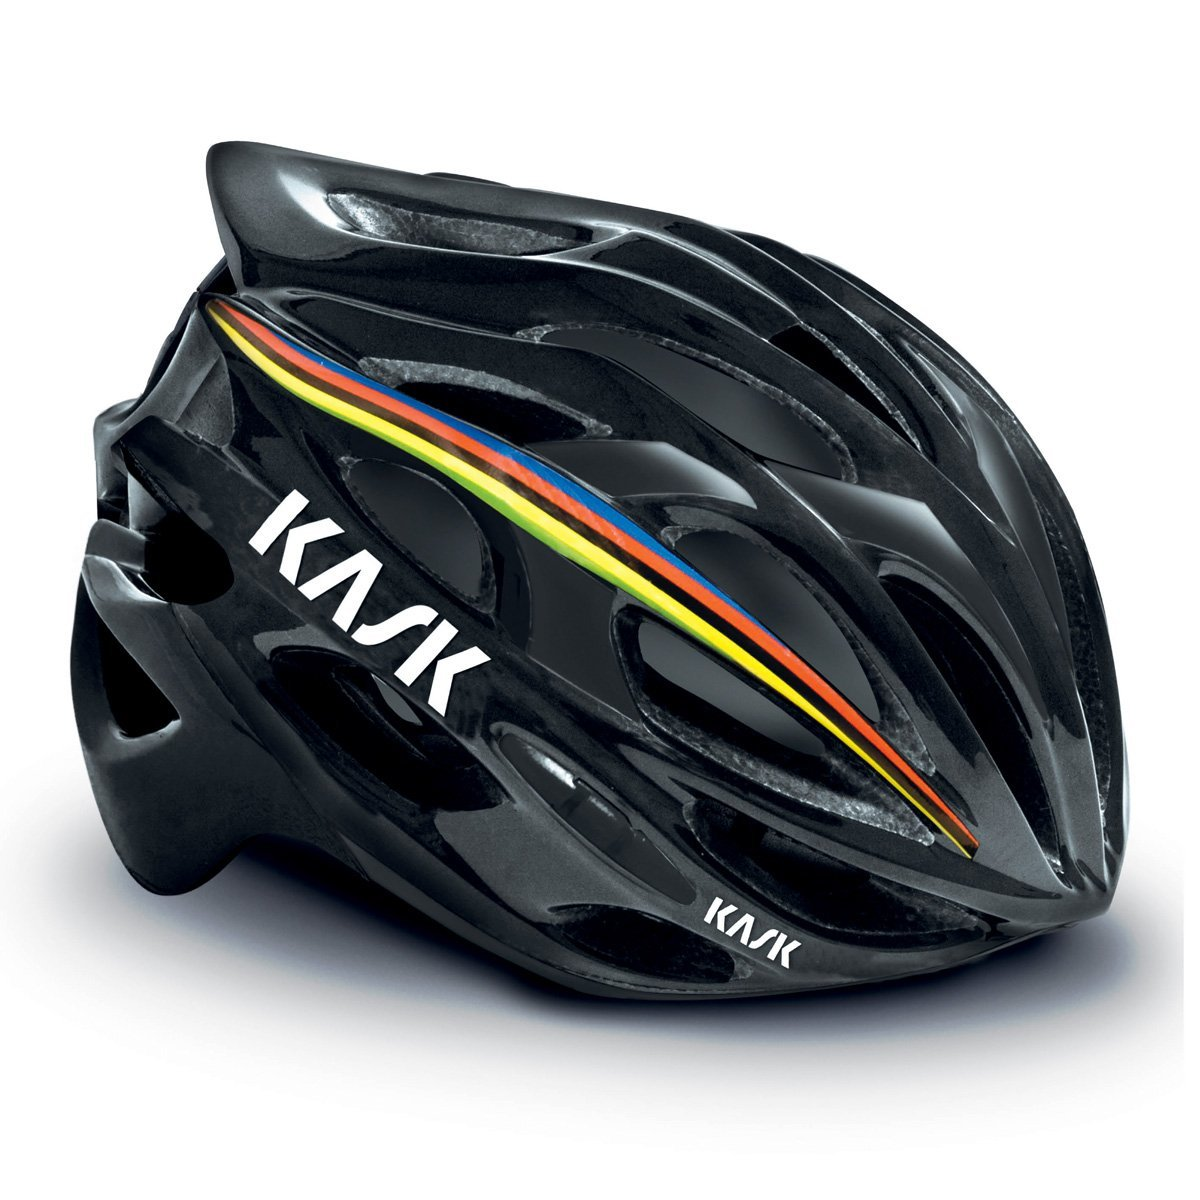 Black Kask Bicycle Helmets